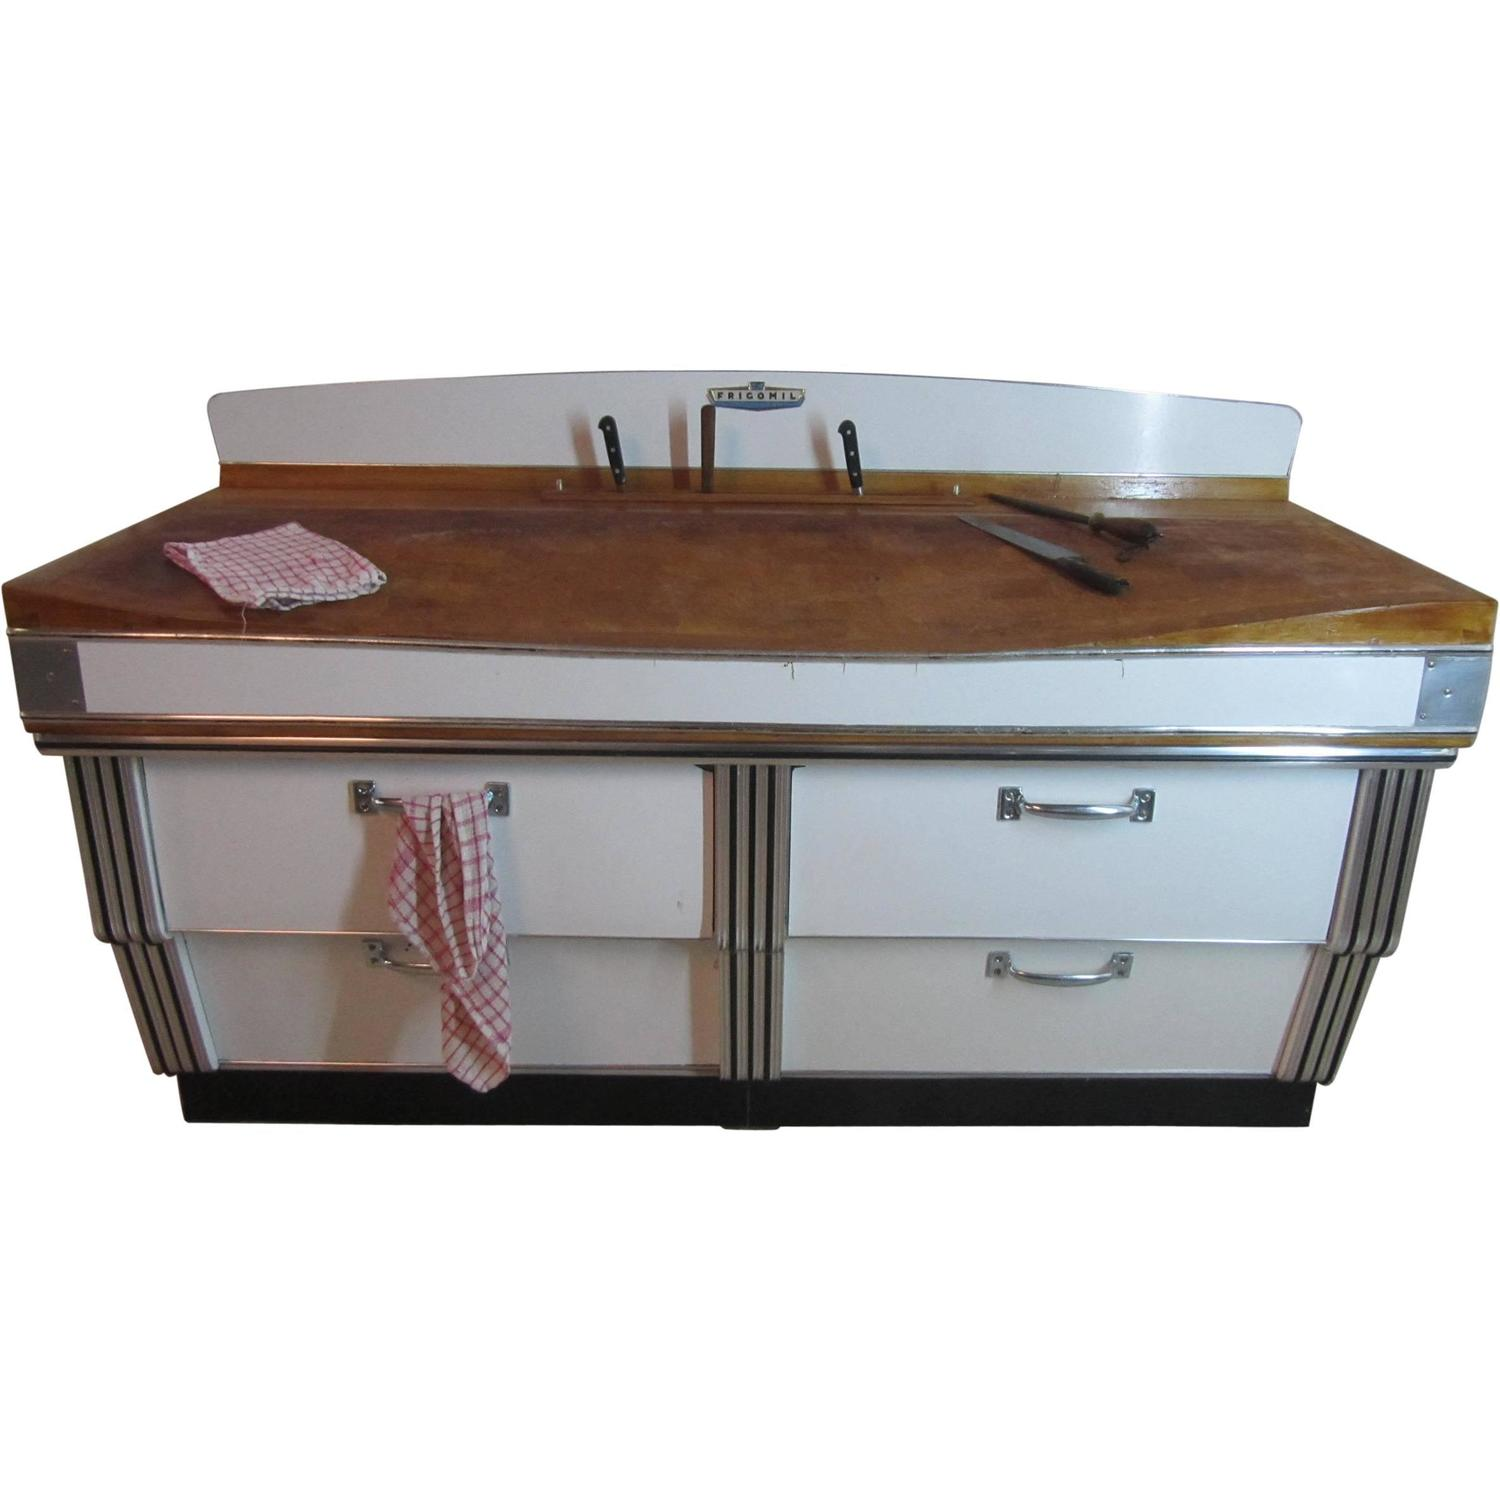 1920s Belgian Art Deco Maple and Formica Butchers Block Kitchen